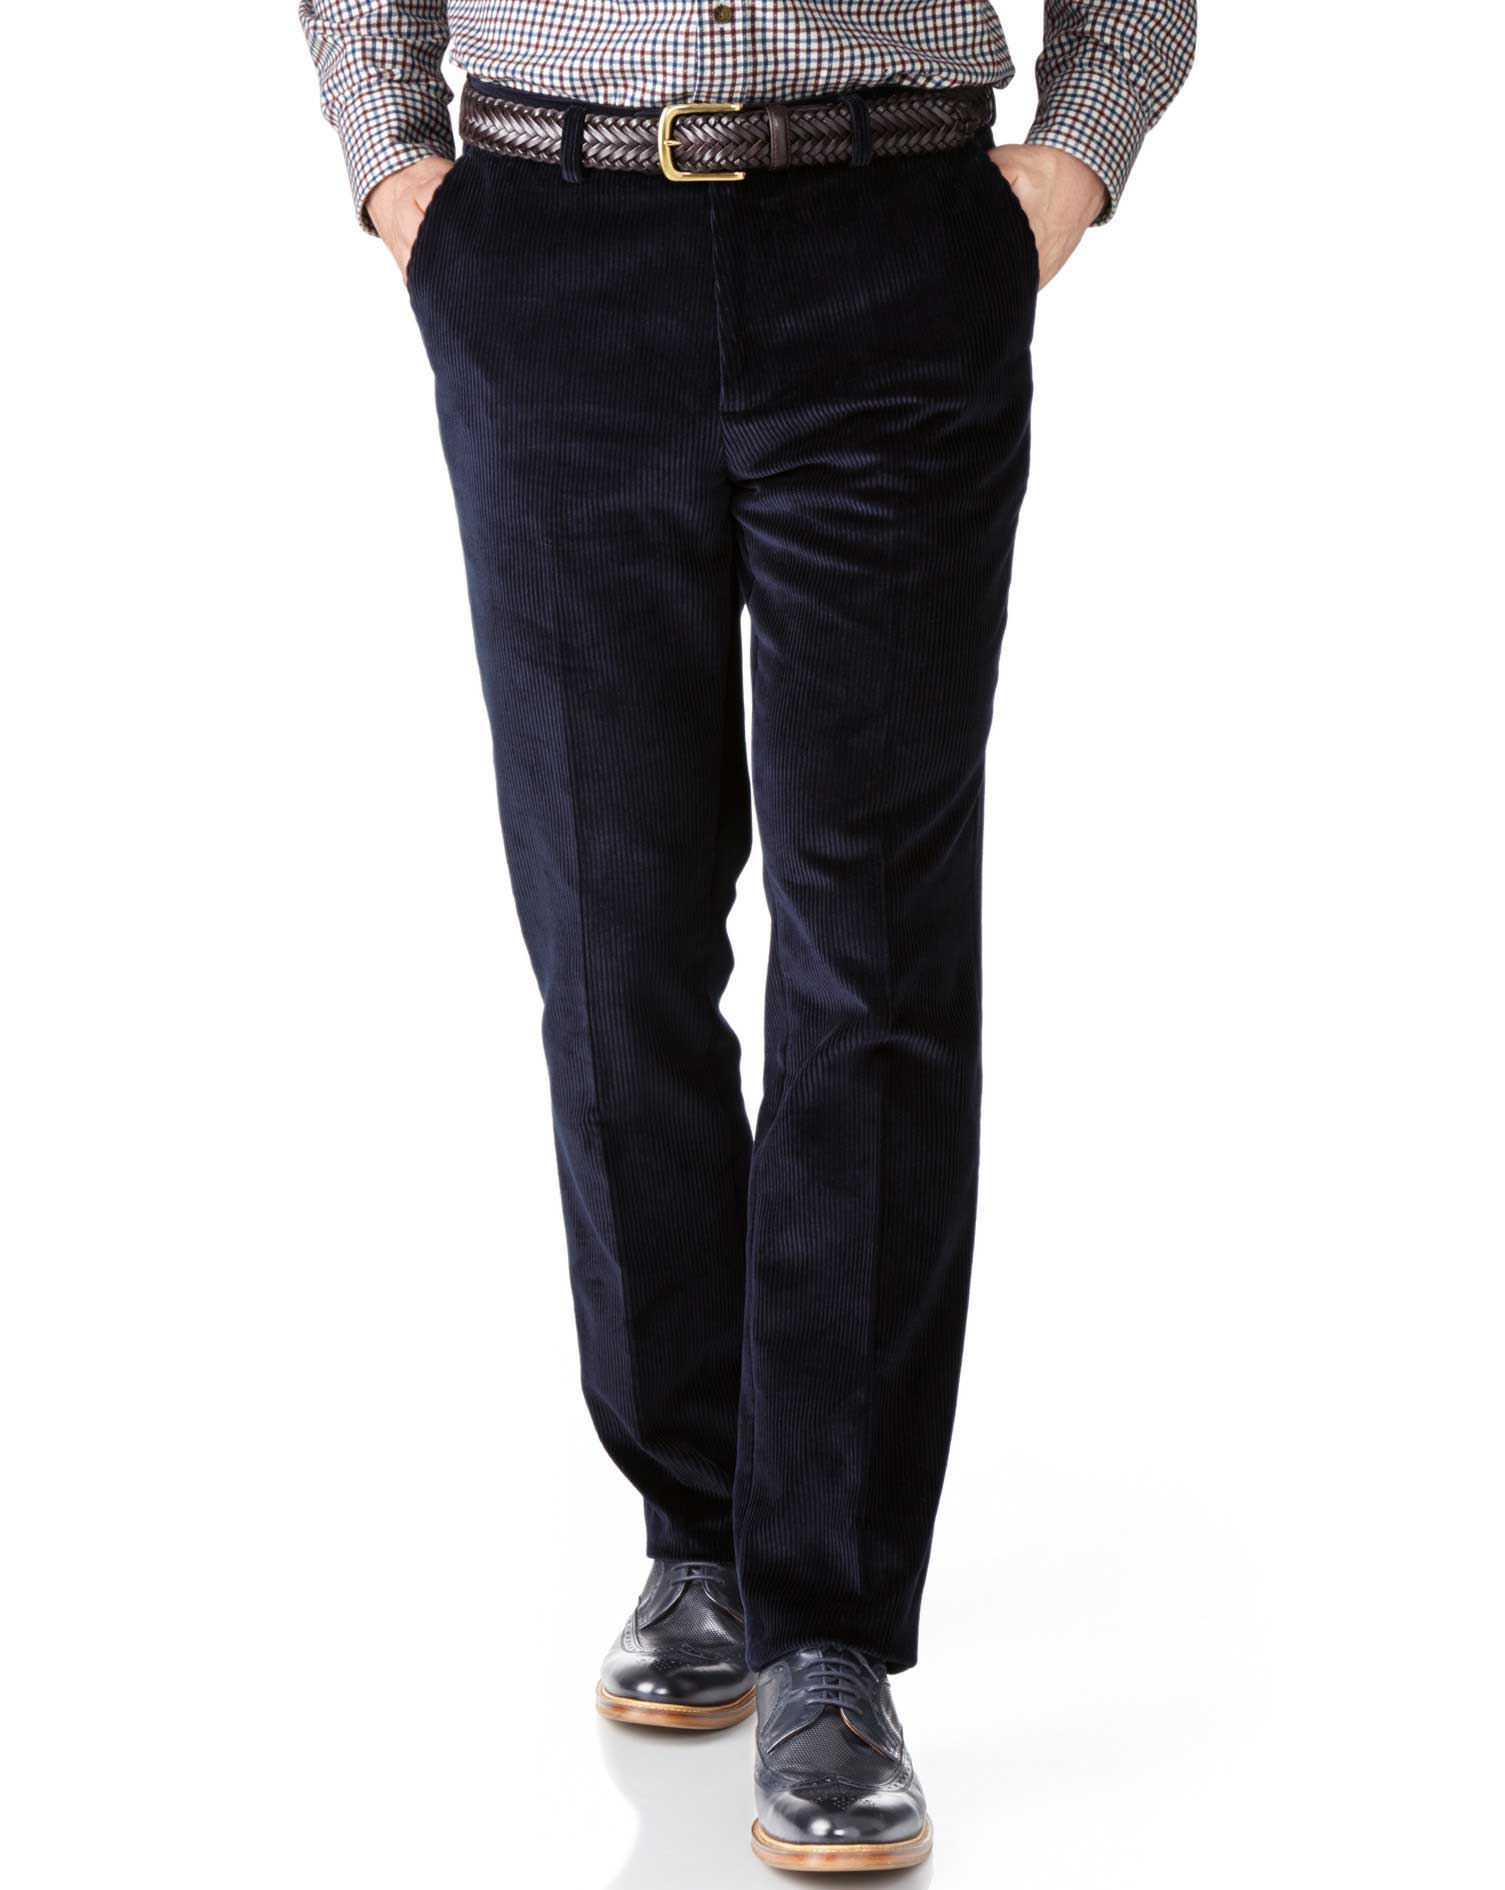 Navy Slim Fit Jumbo Cord Trousers Size W38 L32 by Charles Tyrwhitt